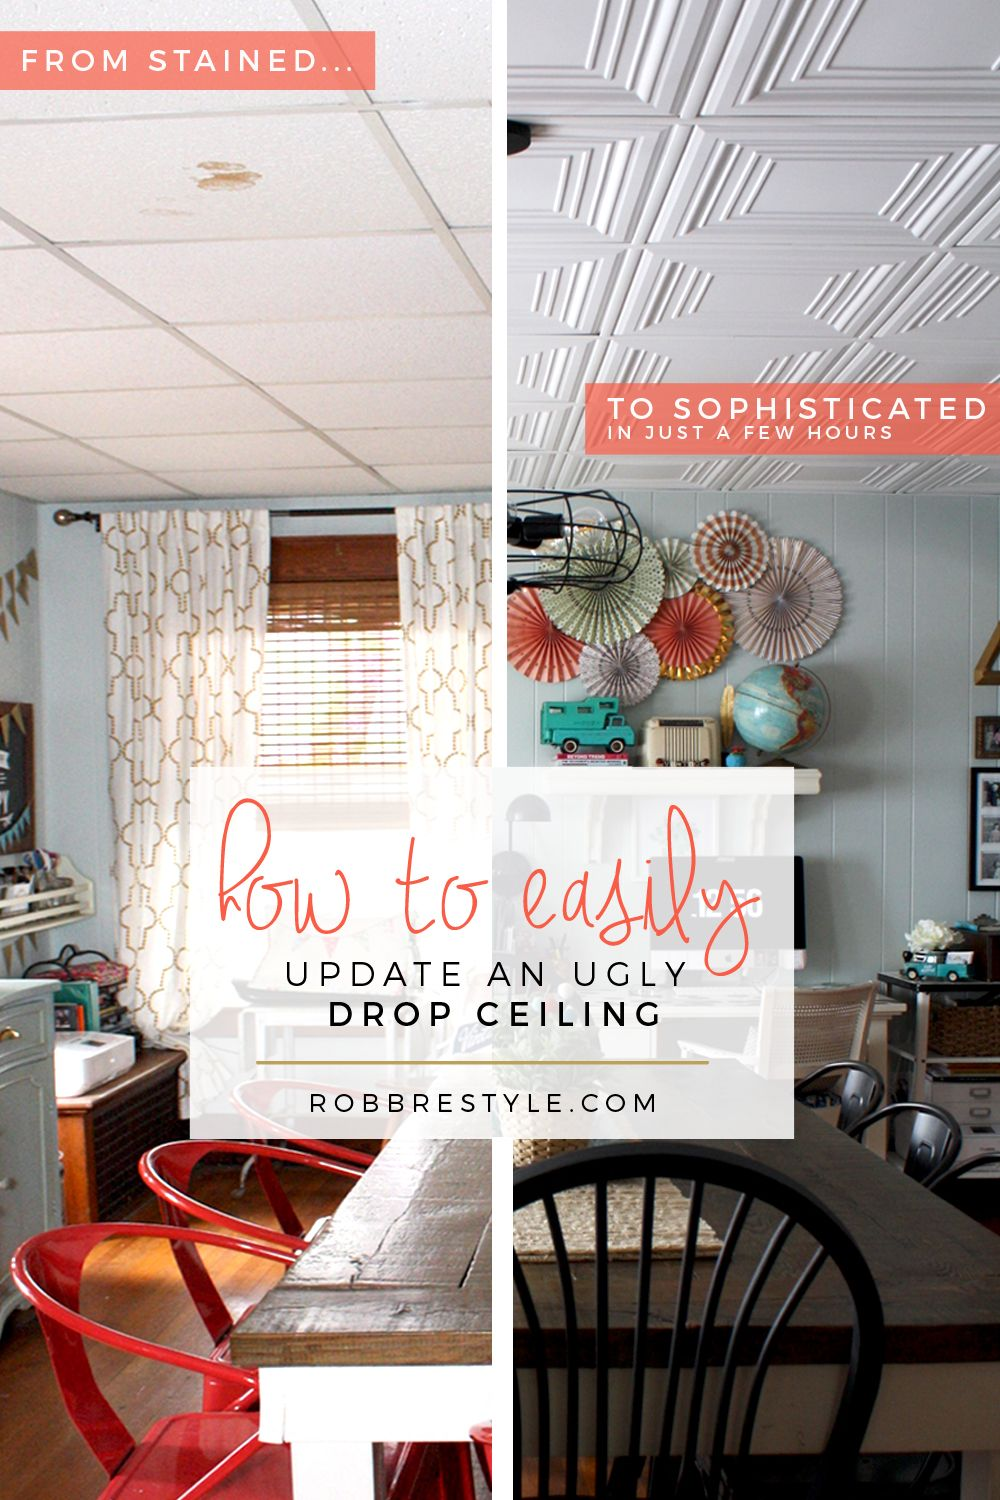 How to easily update an ugly drop ceiling ceilings basements and how to easily update an ugly drop ceiling robb restyle dailygadgetfo Image collections